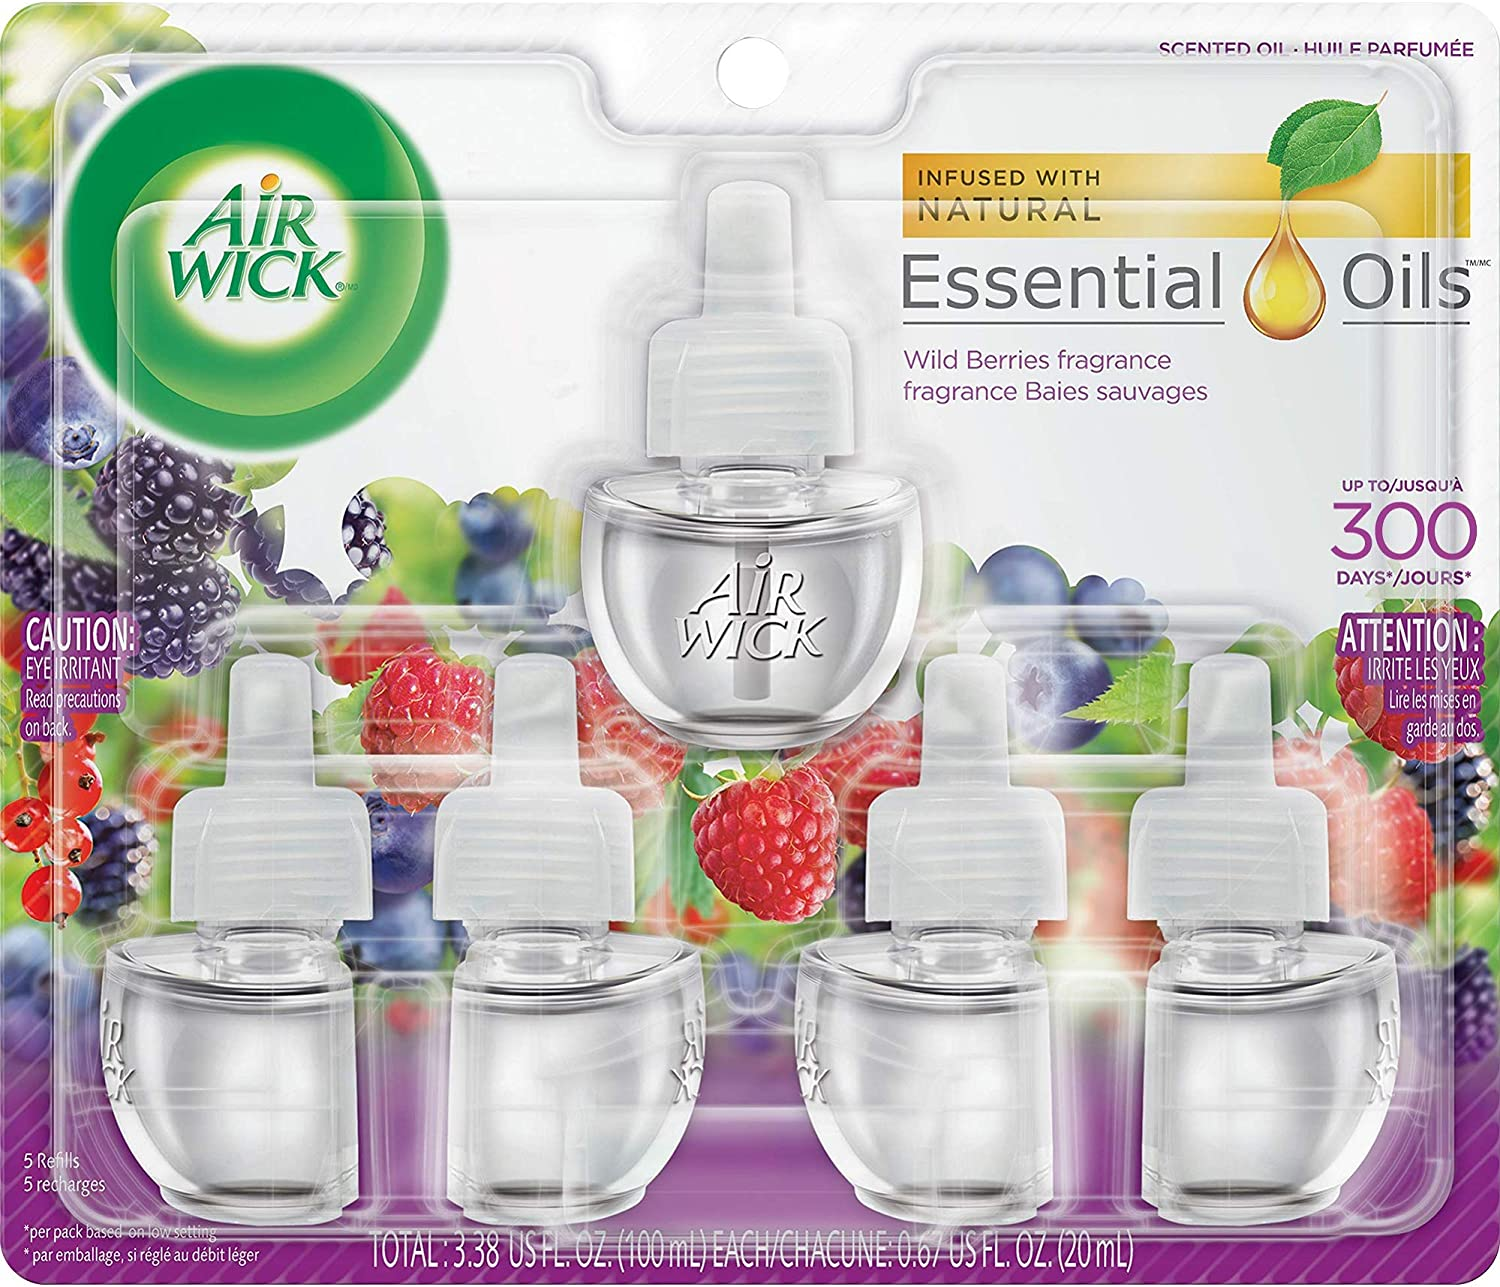 Air Wick Plug in Scented Oil 5 Refills, Wild Berries, Fall scent, Fall spray